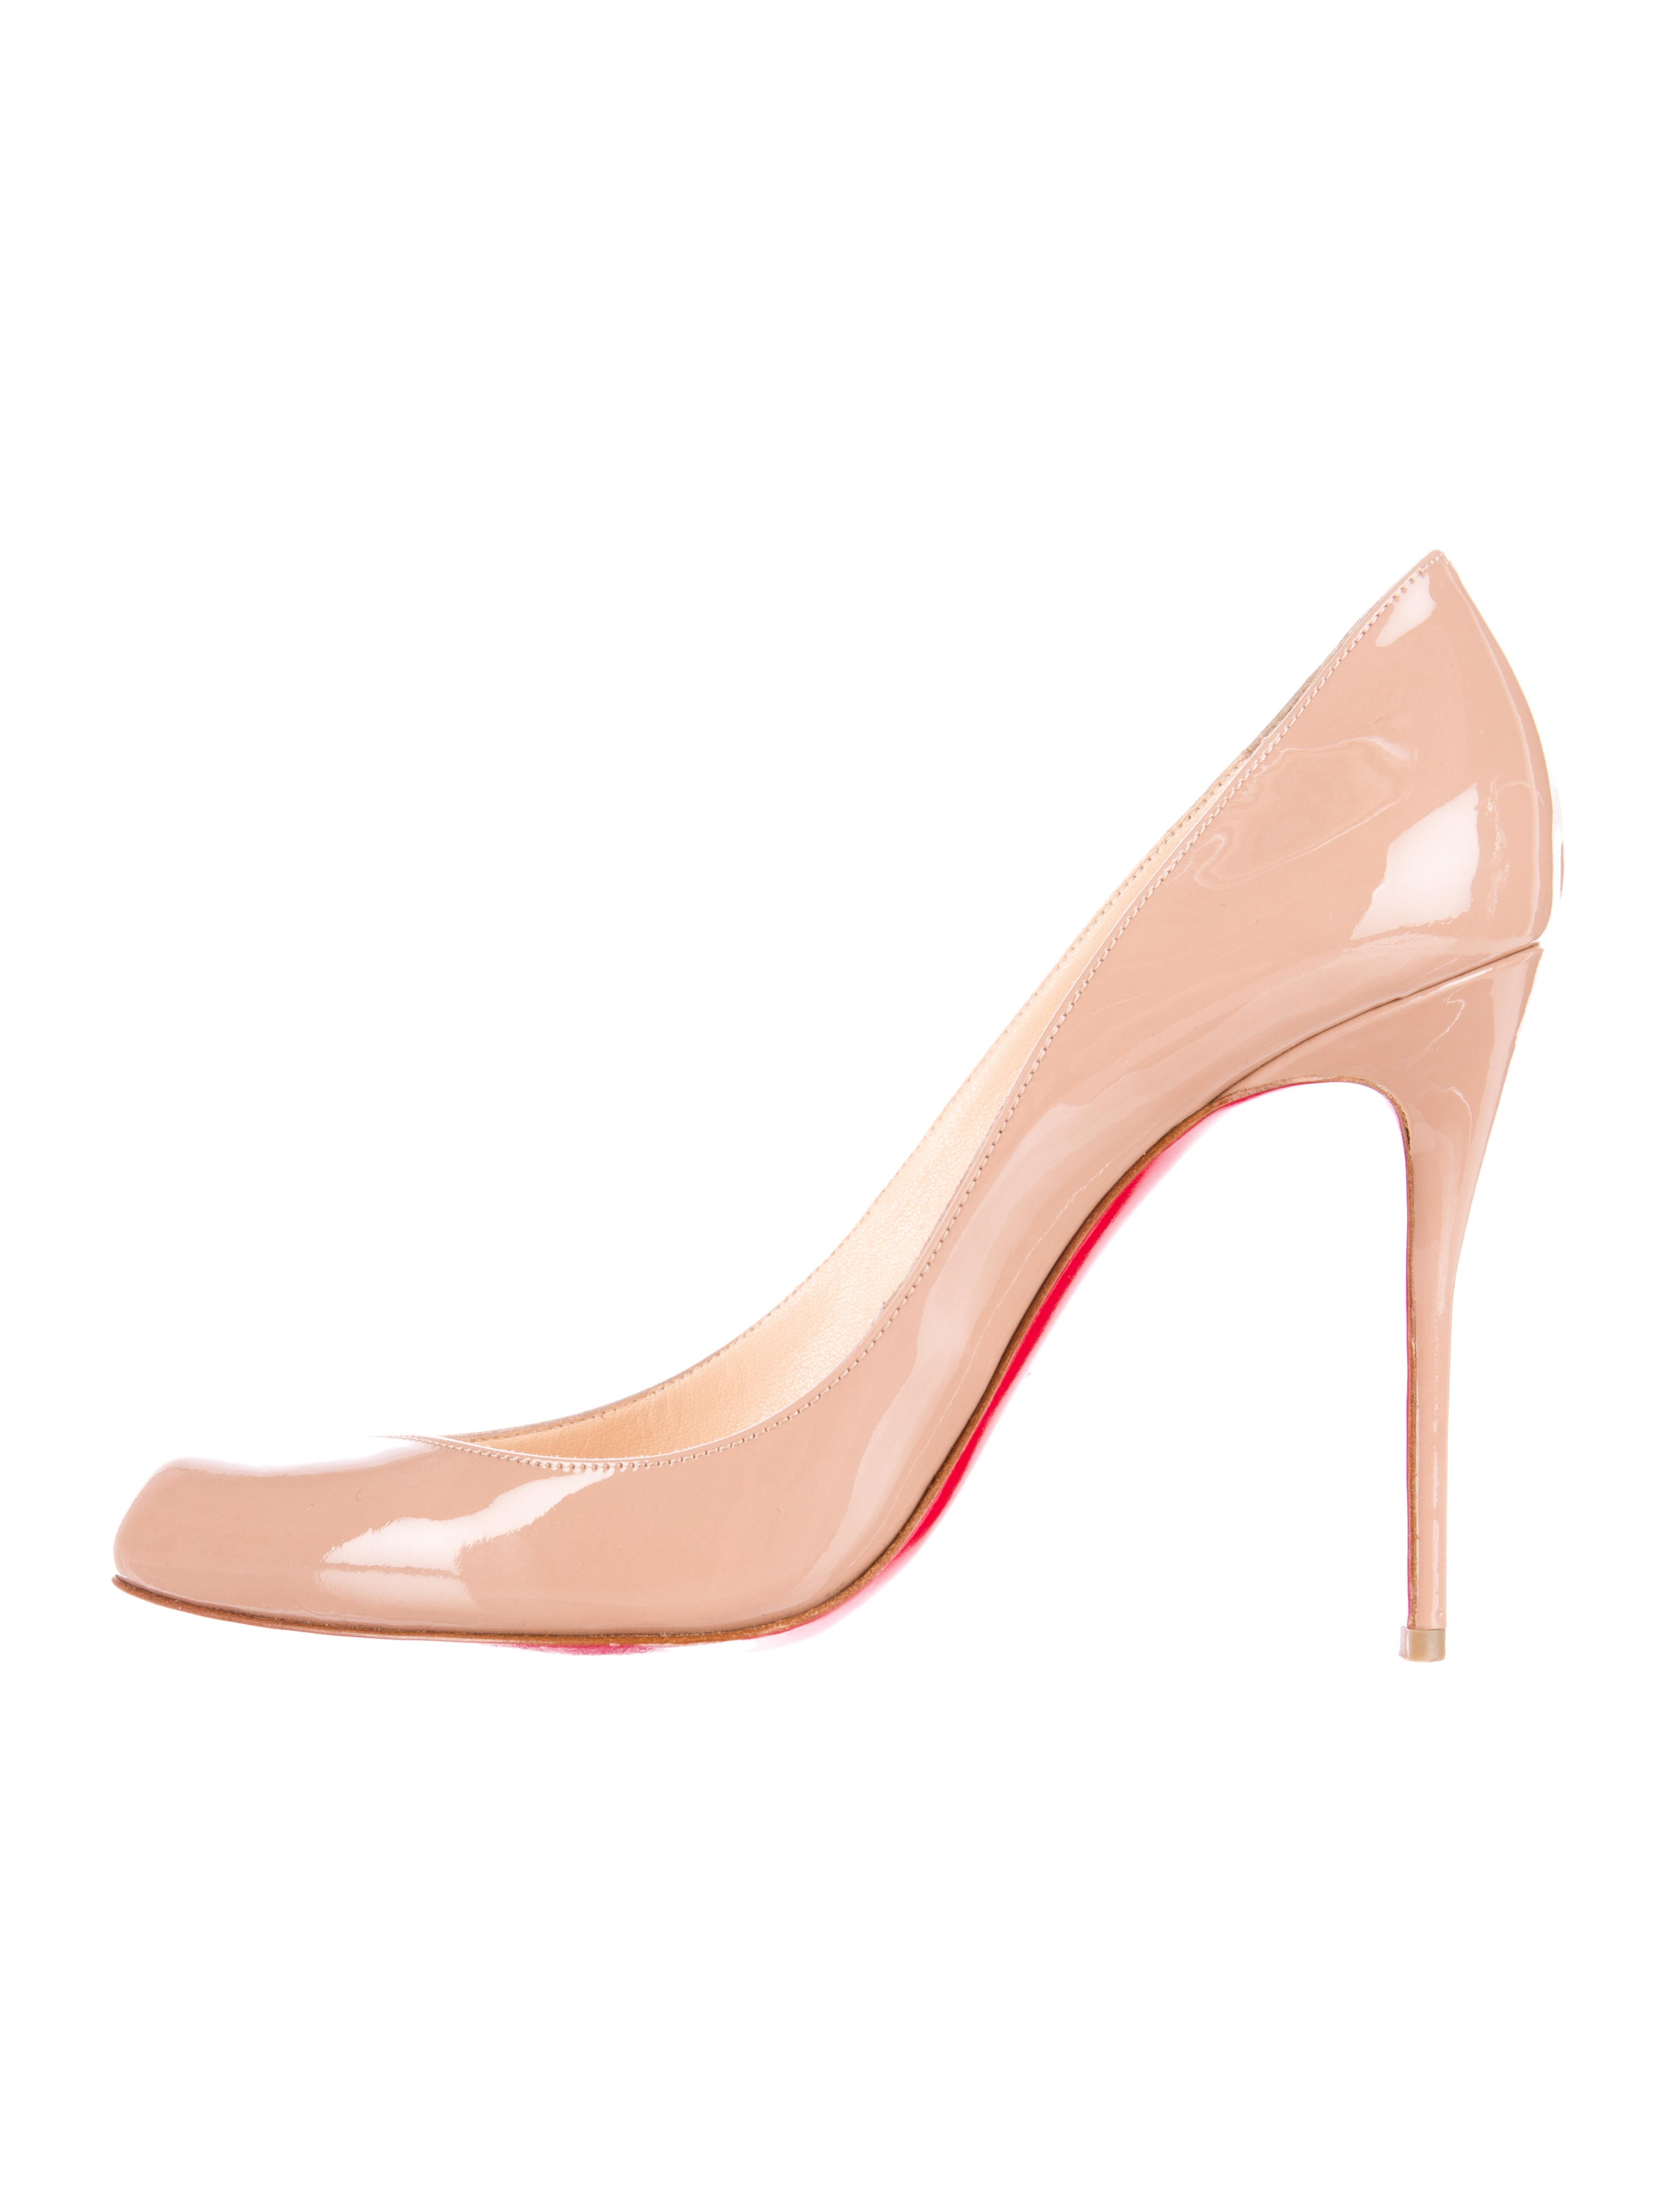 christian louboutin Corneille pumps Tan patent leather pointed ...